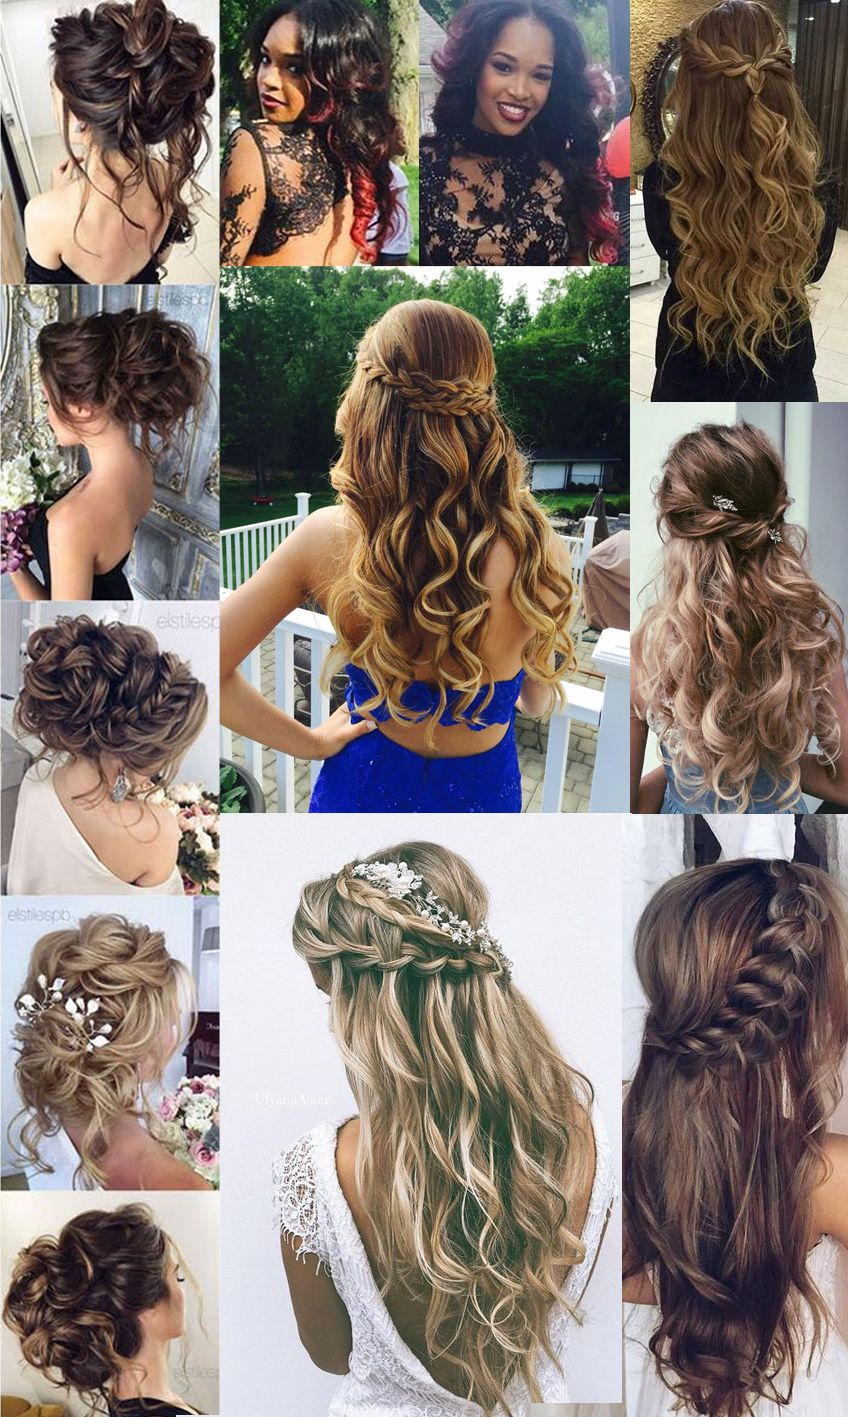 prom hair for party, hairstyle prom for long hair